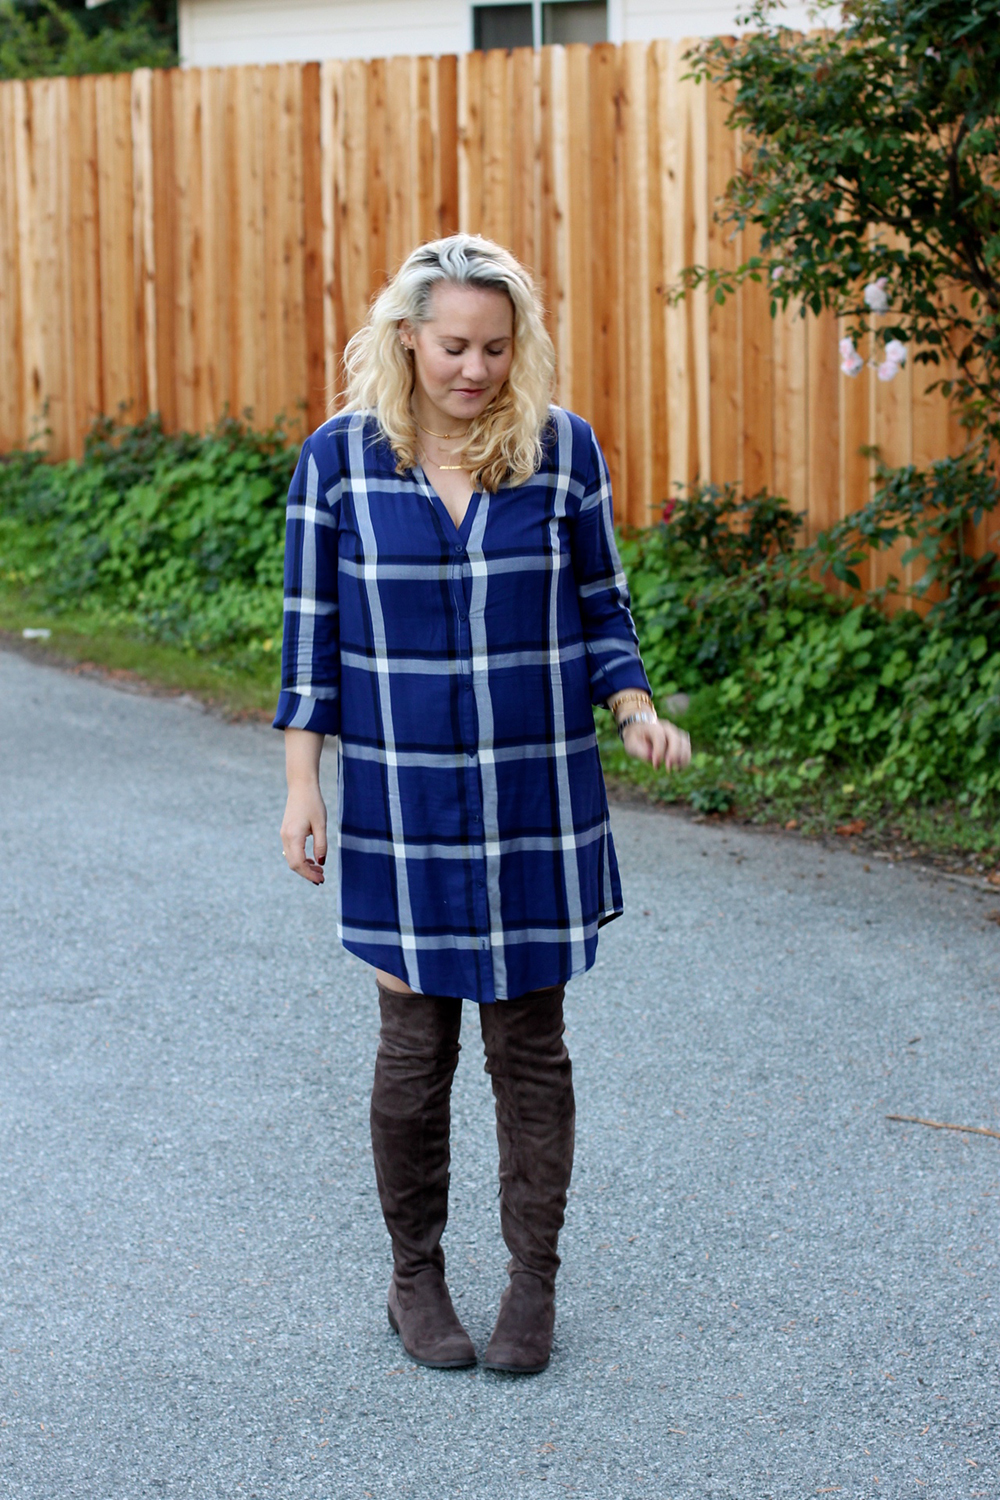 cupcakes-and-cashmere-plaid-shirtdress-outfit-inspiration-fall-fashion-mom-style-have-need-want-6